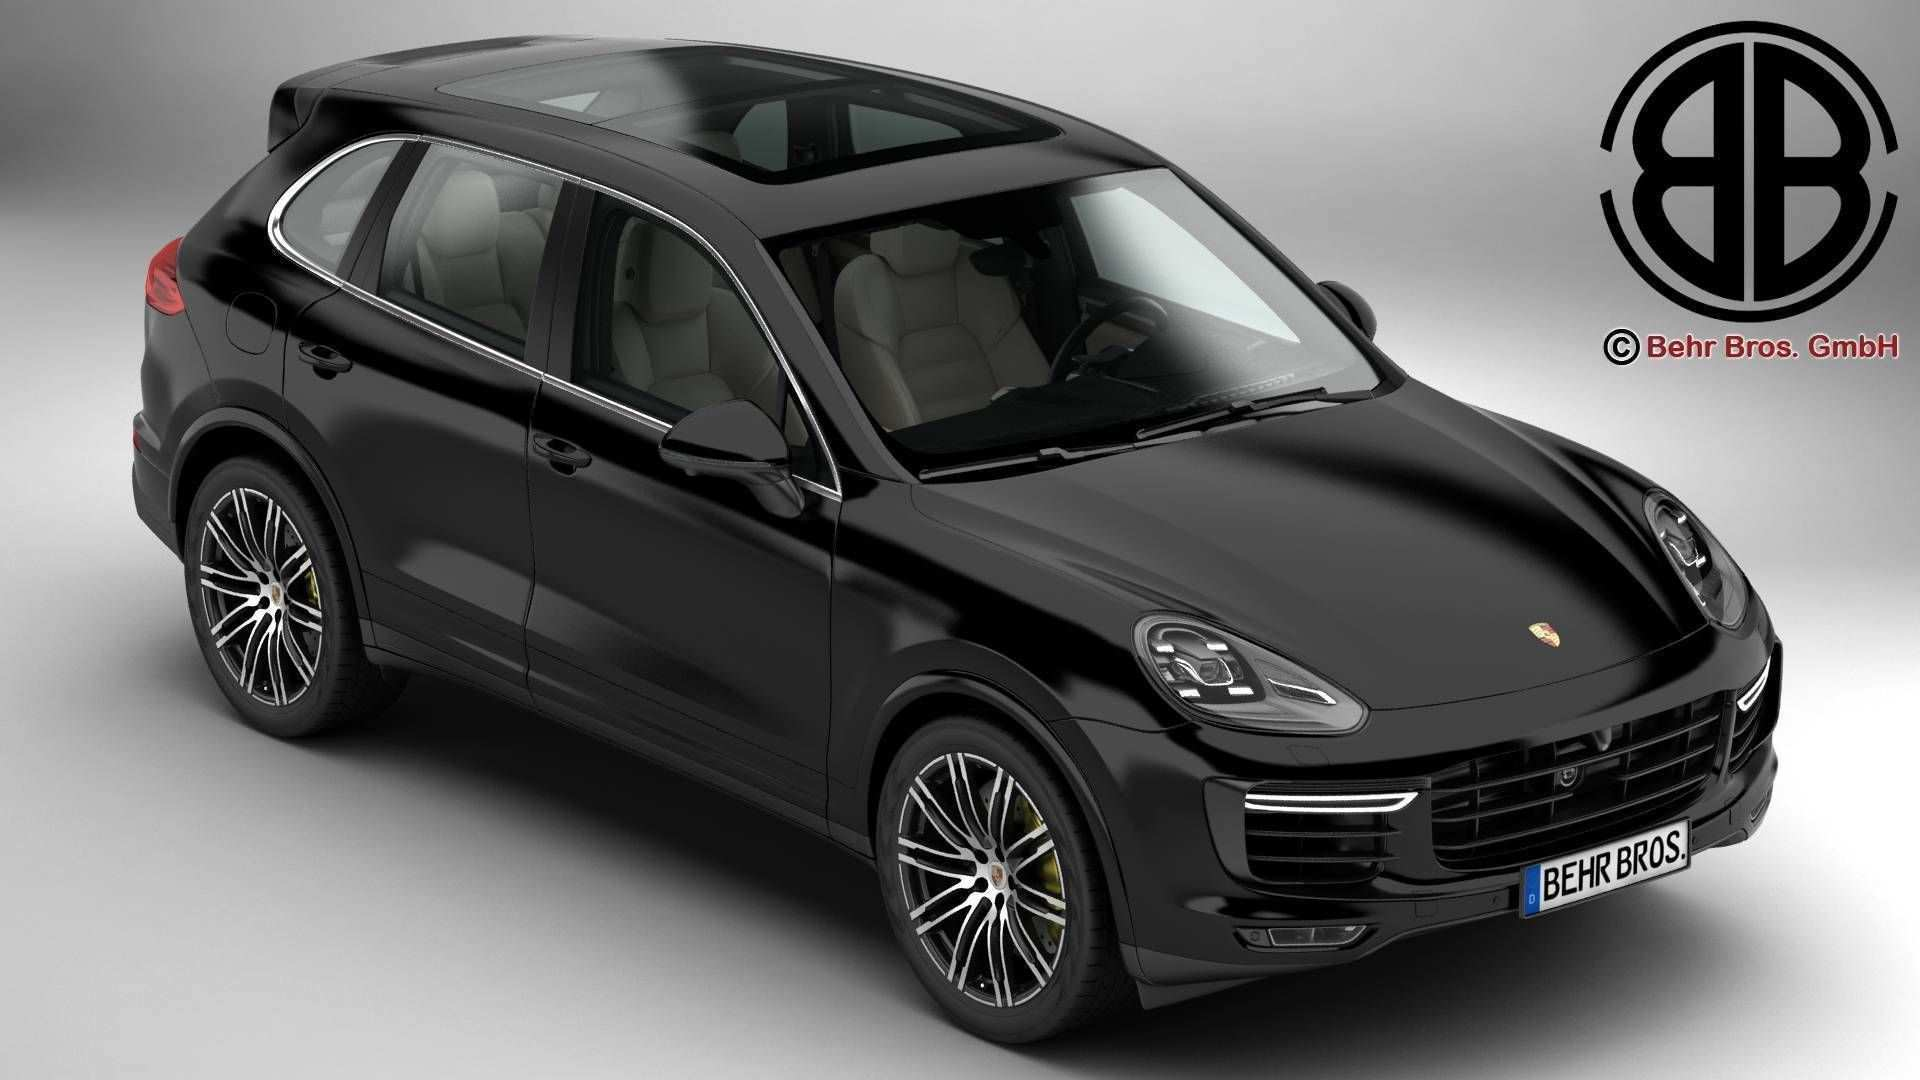 77 The Best Porsche Cayenne Model Price And Review